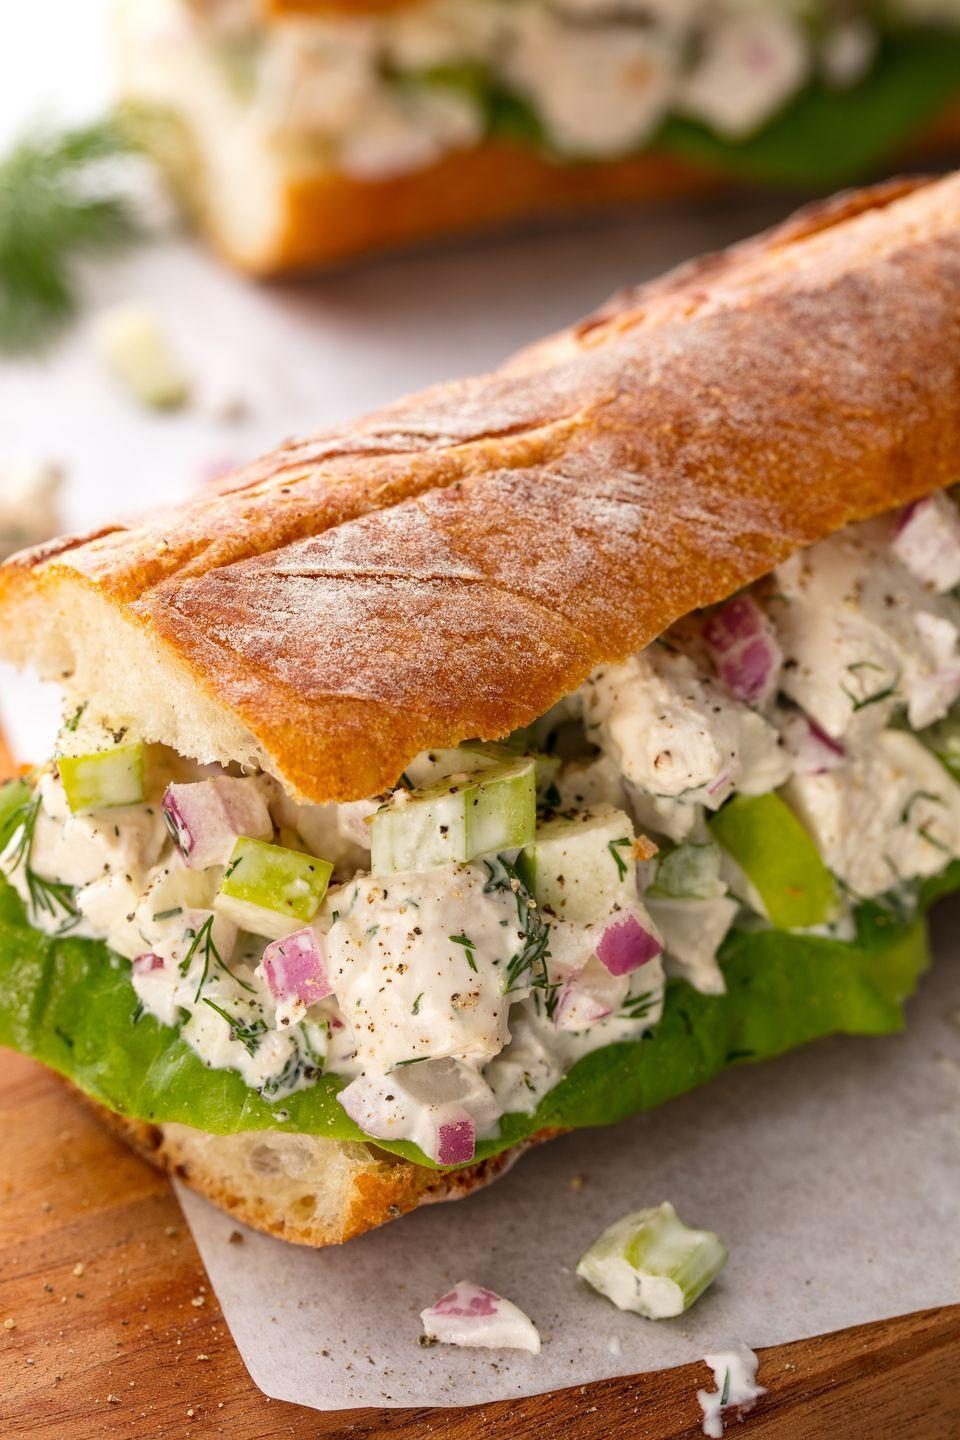 """<p>Just like Mama used to make.</p><p>Get the recipe from <a href=""""/cooking/recipe-ideas/recipes/a54787/best-chicken-salad-sandwich-recipe/"""" data-ylk=""""slk:Delish"""" class=""""link rapid-noclick-resp"""">Delish</a>.</p>"""